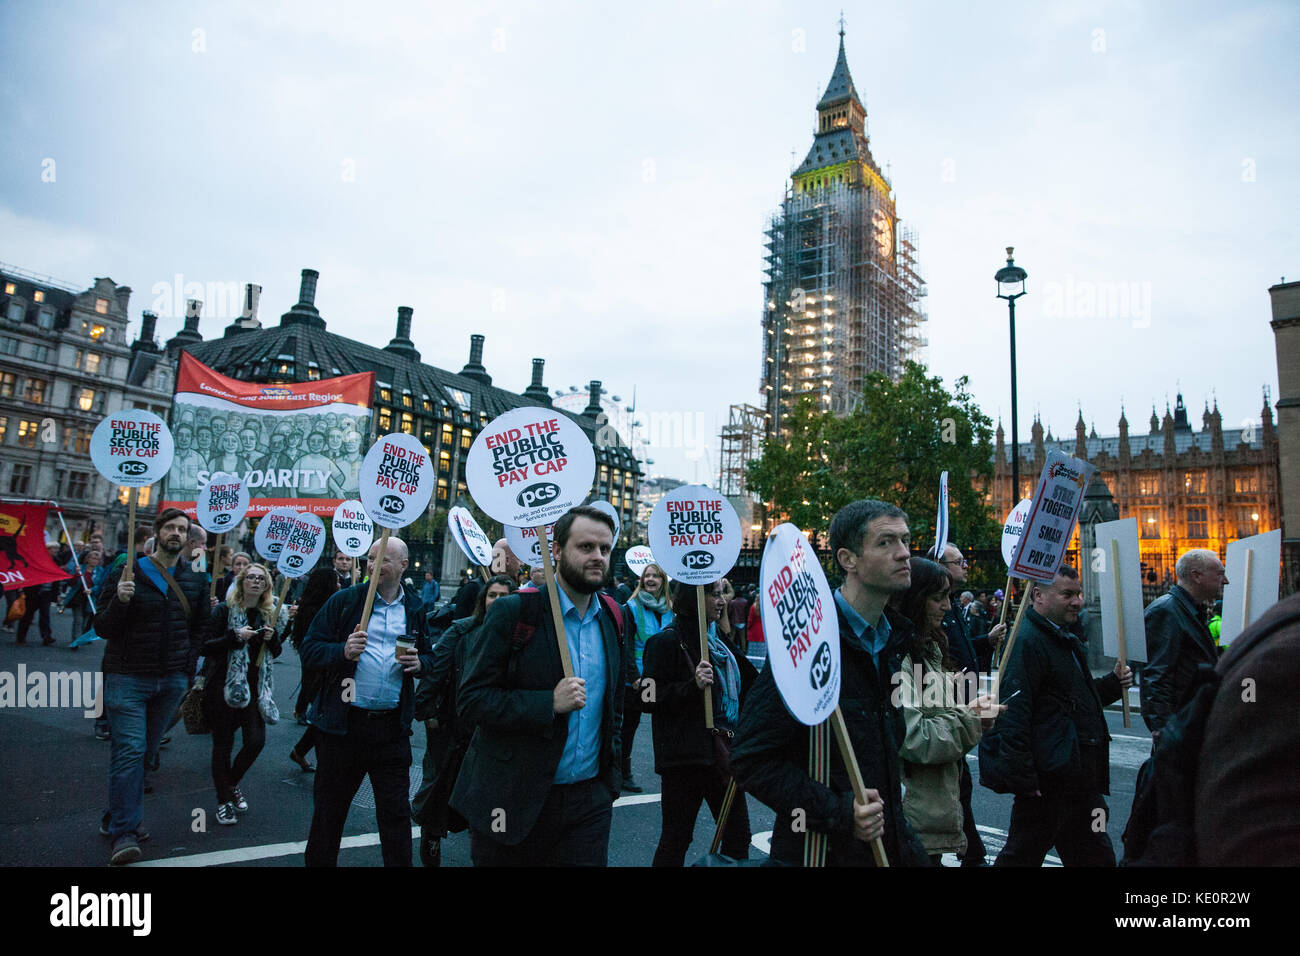 London, UK. 17th Oct, 2017. Public and Commercial Services Union (PCS) trade union members march to a TUC rally - Stock Image